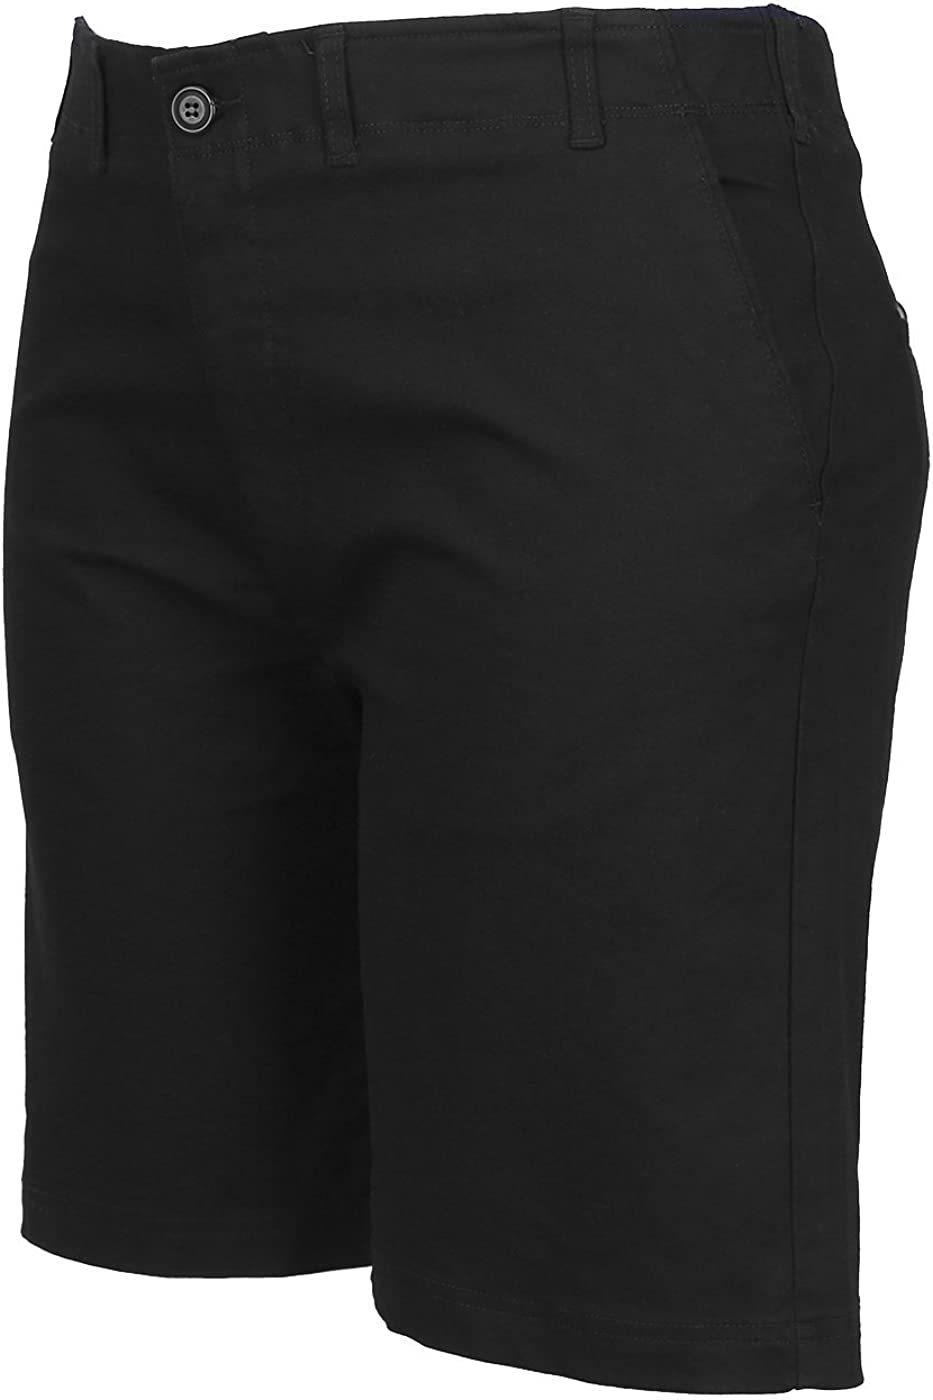 HDE Mens Big and Tall Shorts Comfort Waist Classic Fit Twill Cotton Blend Chino Black, 46